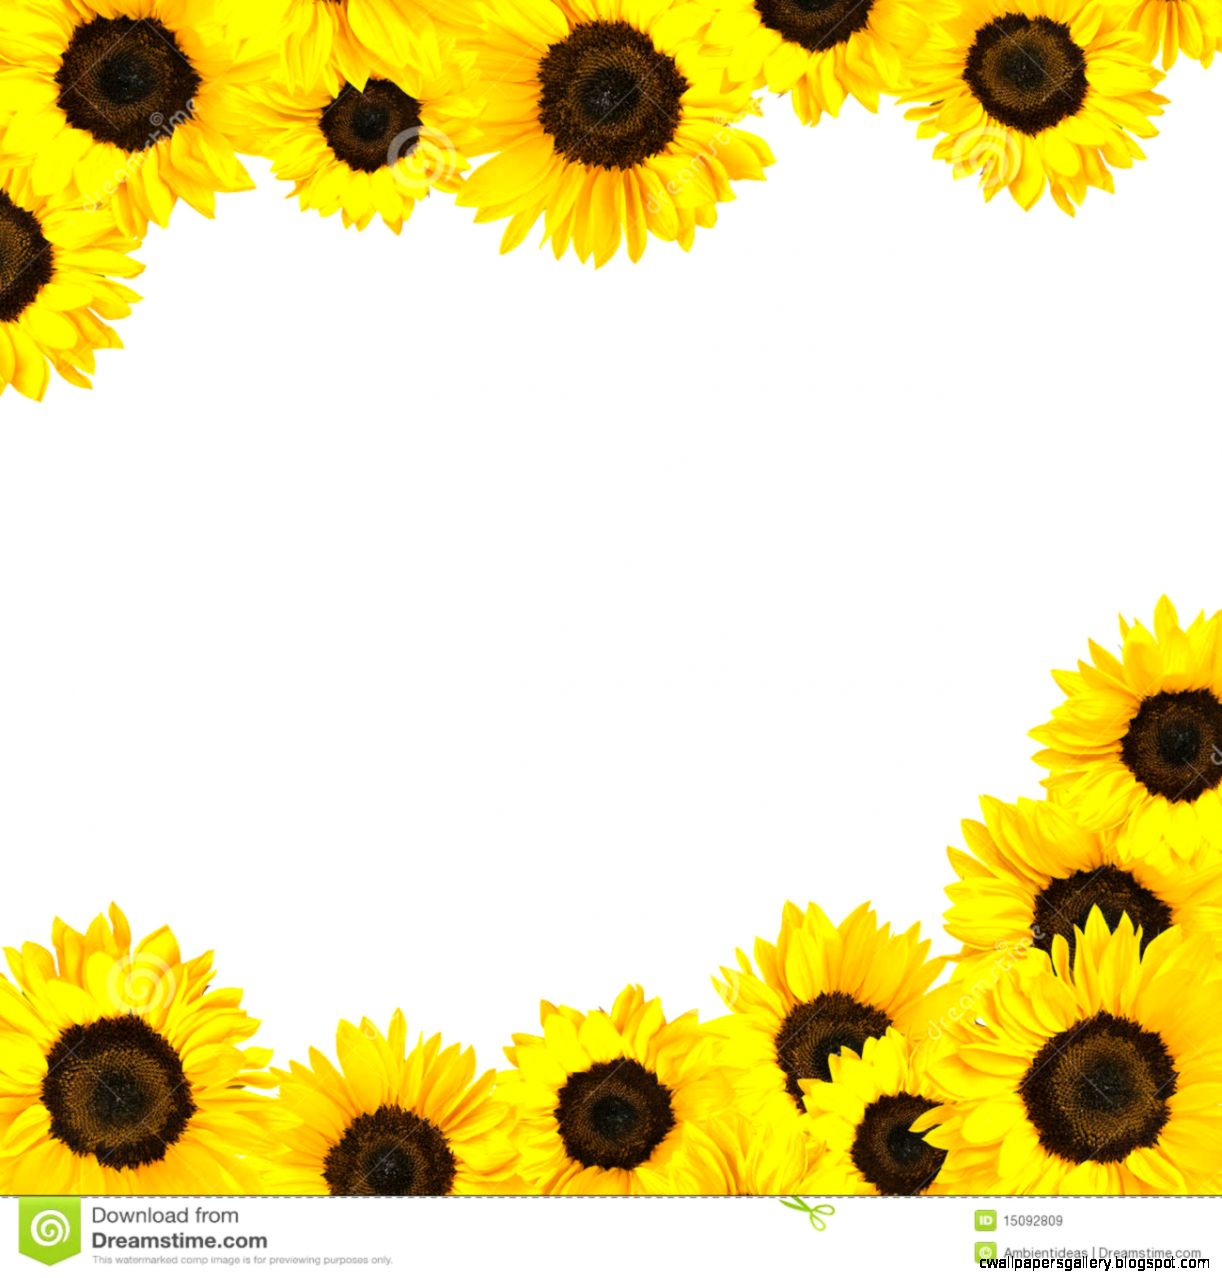 Sunflowers Clipart Border Sunflower Border Isolated On   Clipart Kid